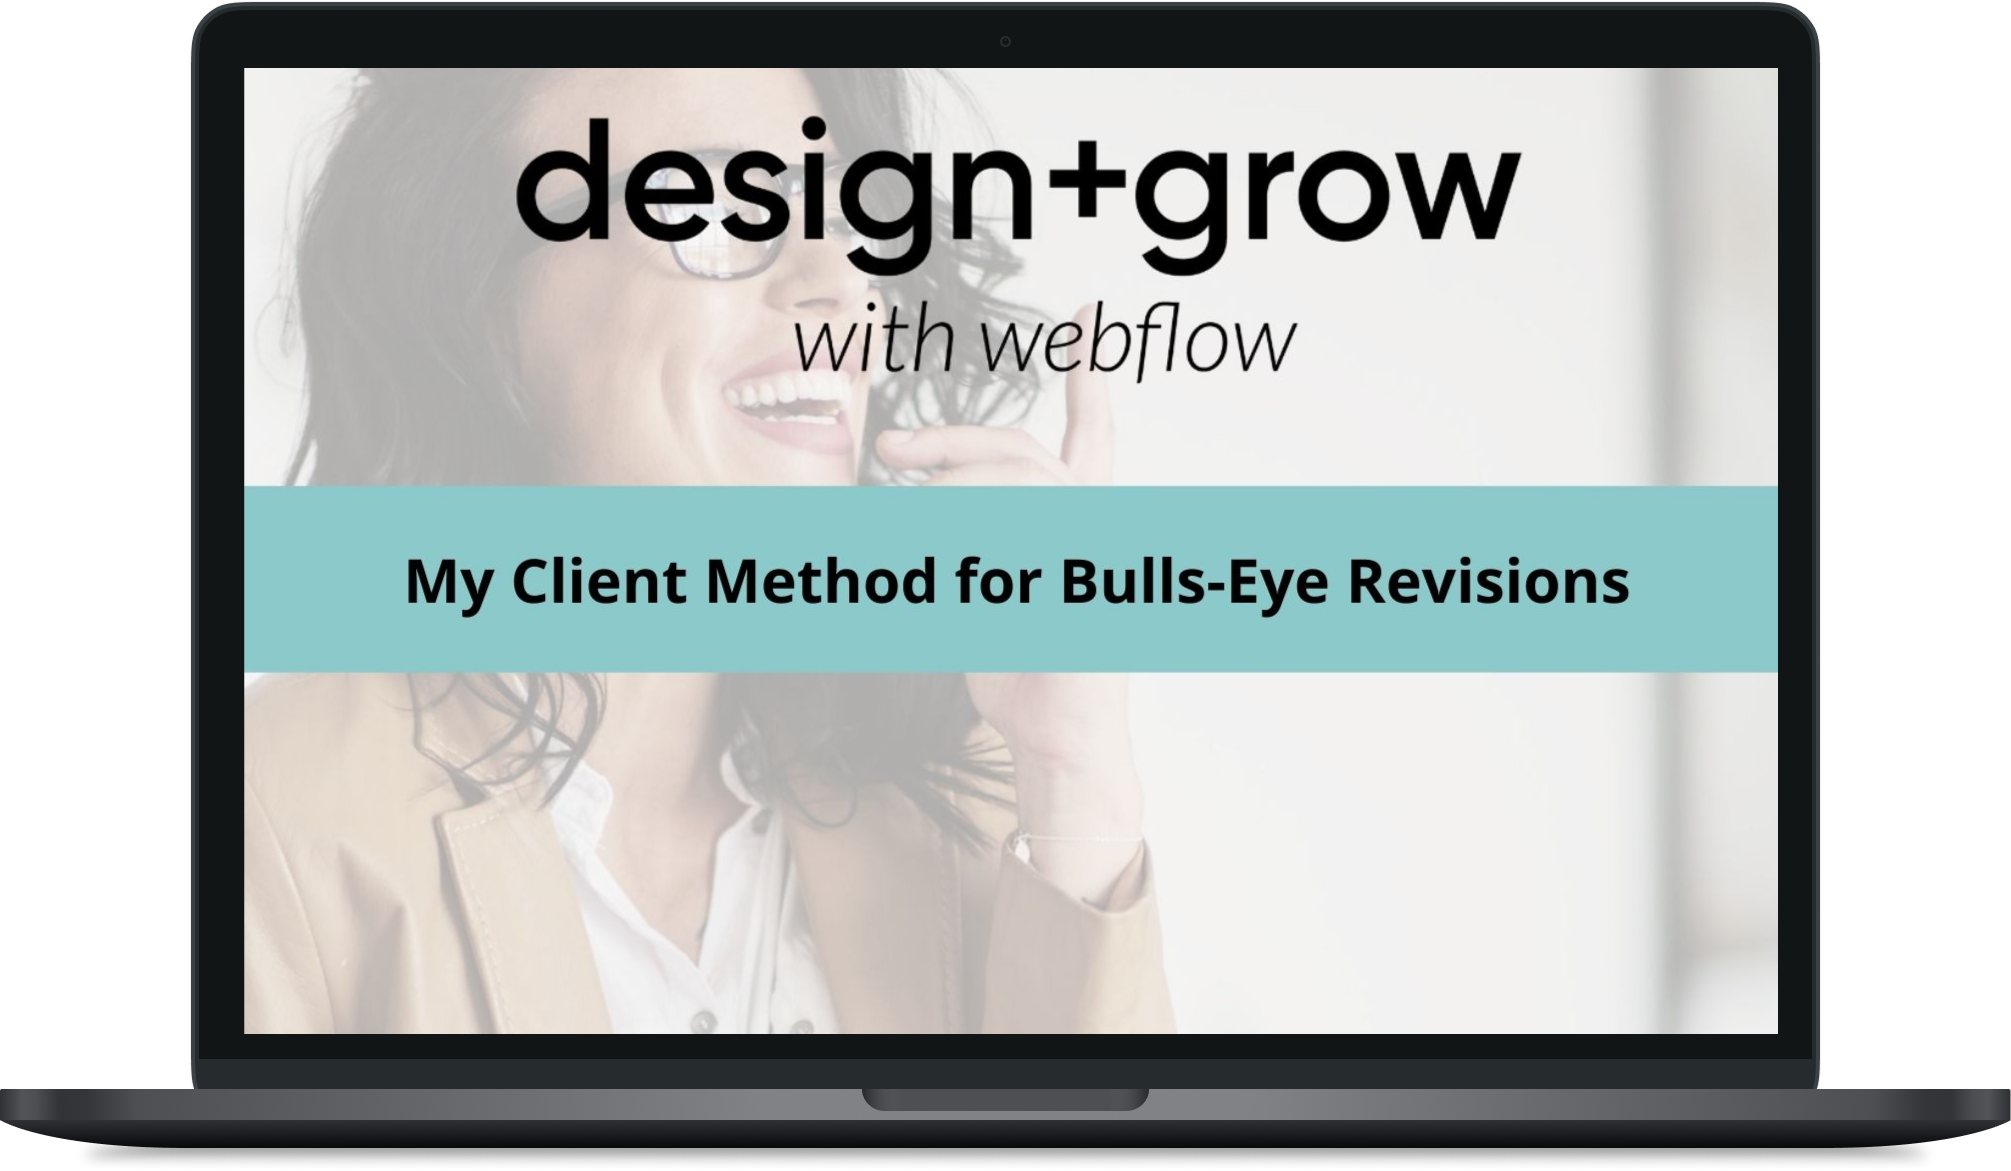 My client method for Bull's-Eye Revisions